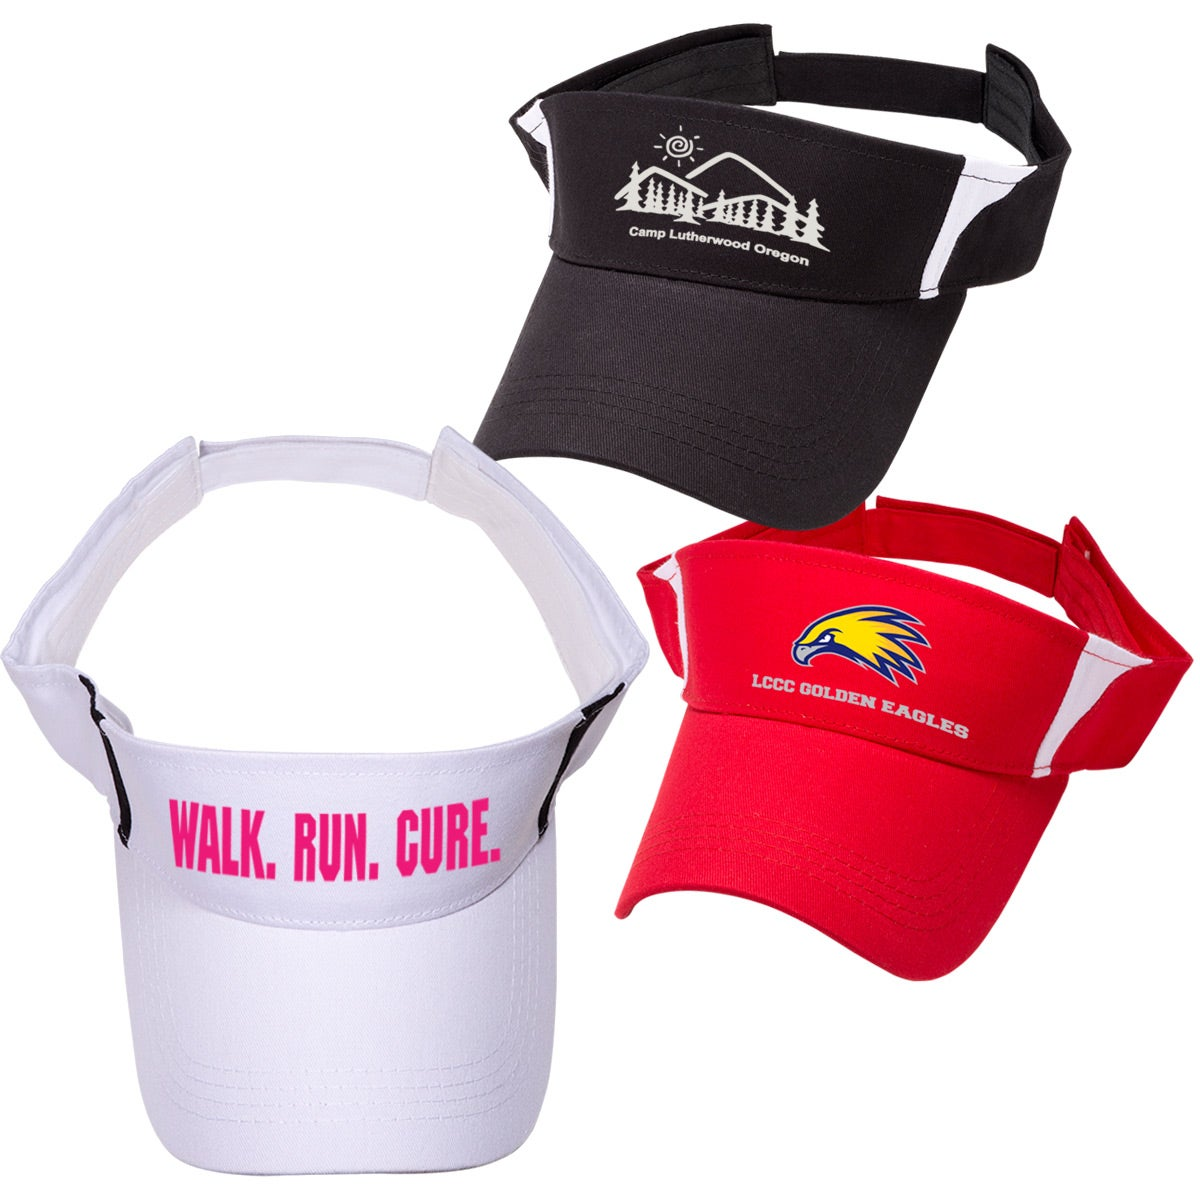 Pro style cotton twill visor for your organization